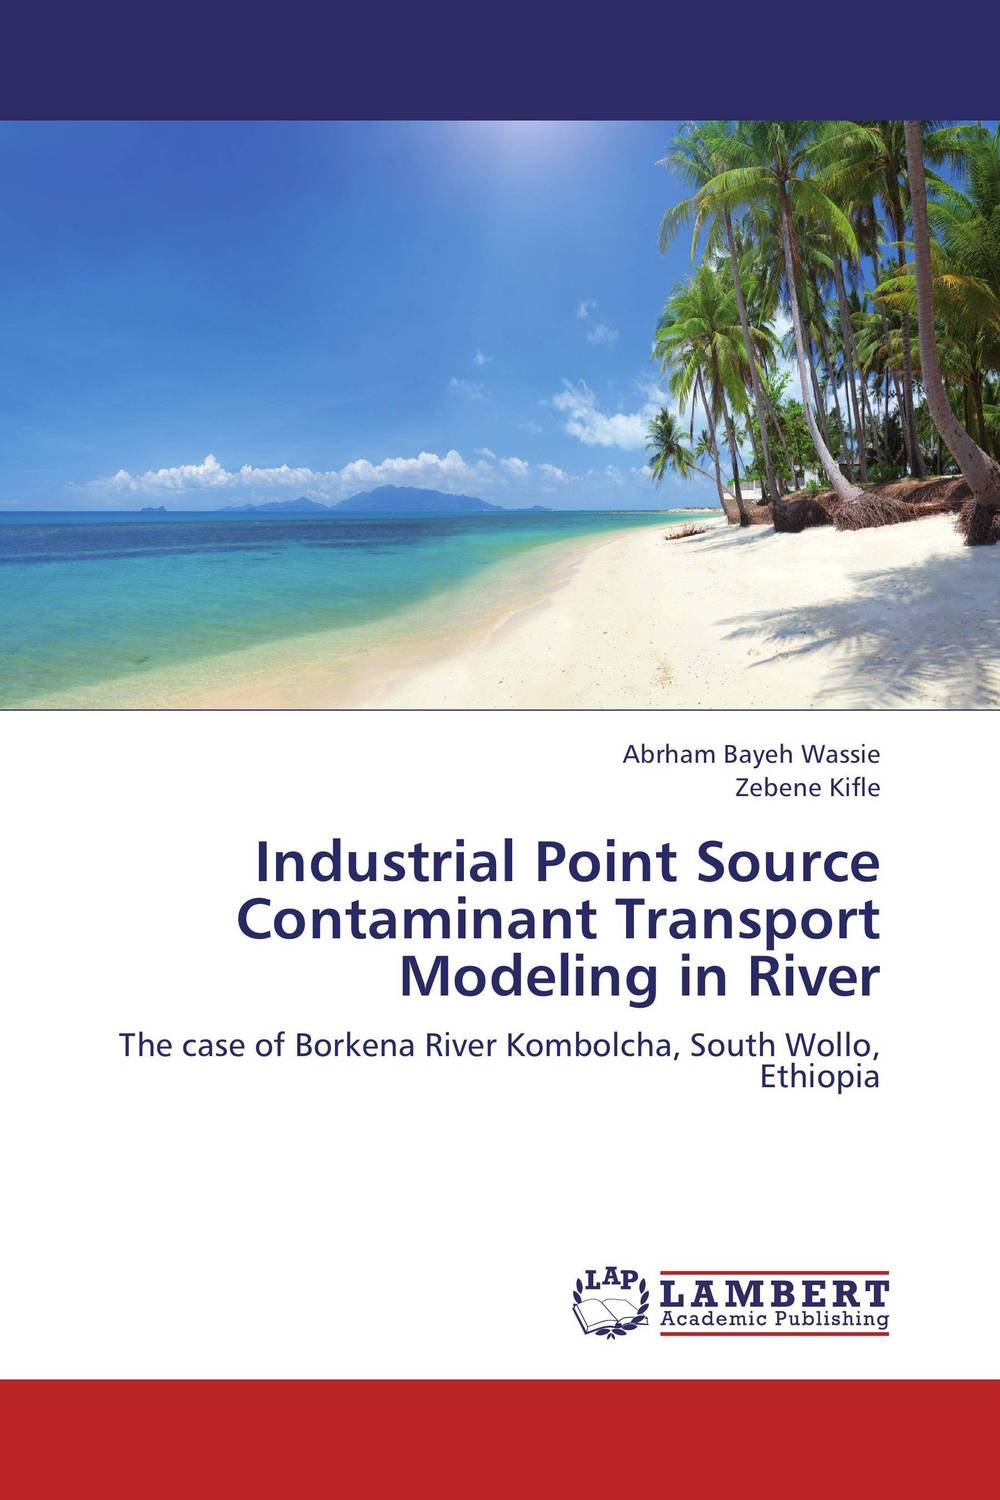 Industrial Point Source Contaminant Transport Modeling in River